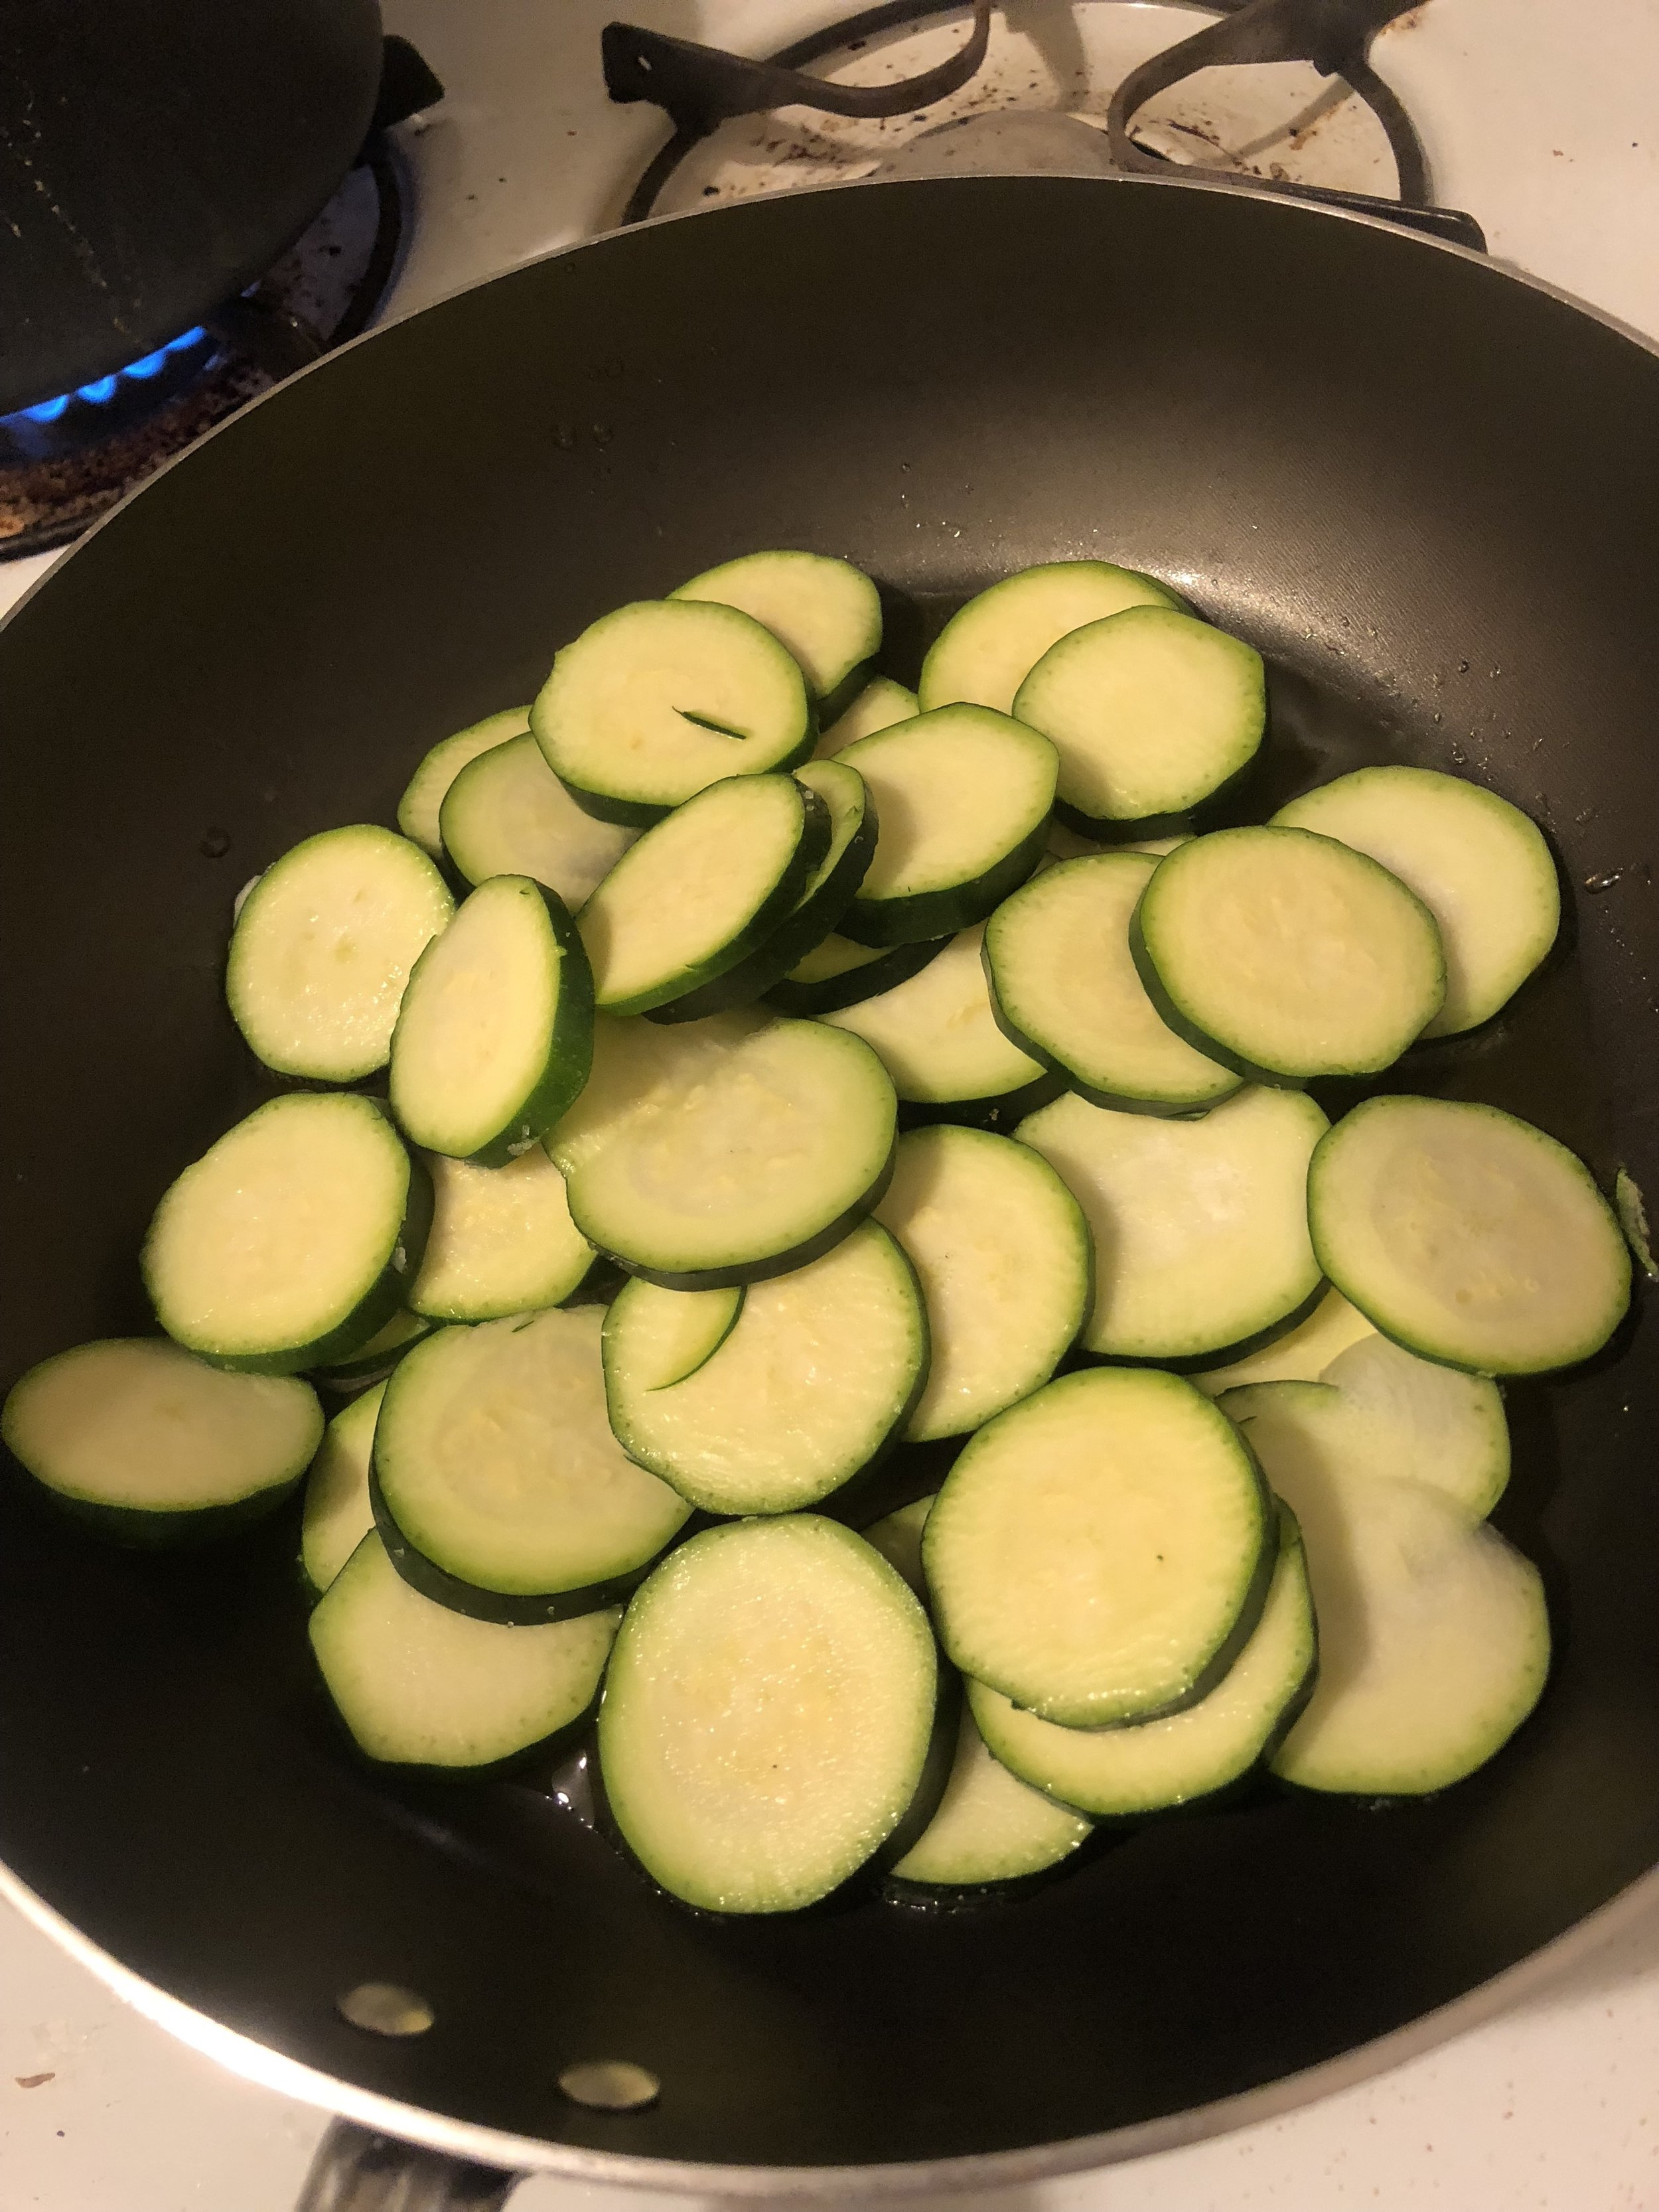 Heat Oil in your medium pan and cook until cooked through. While zucchini cooks, clean and dice the red bell peppers into bite sized pieces.